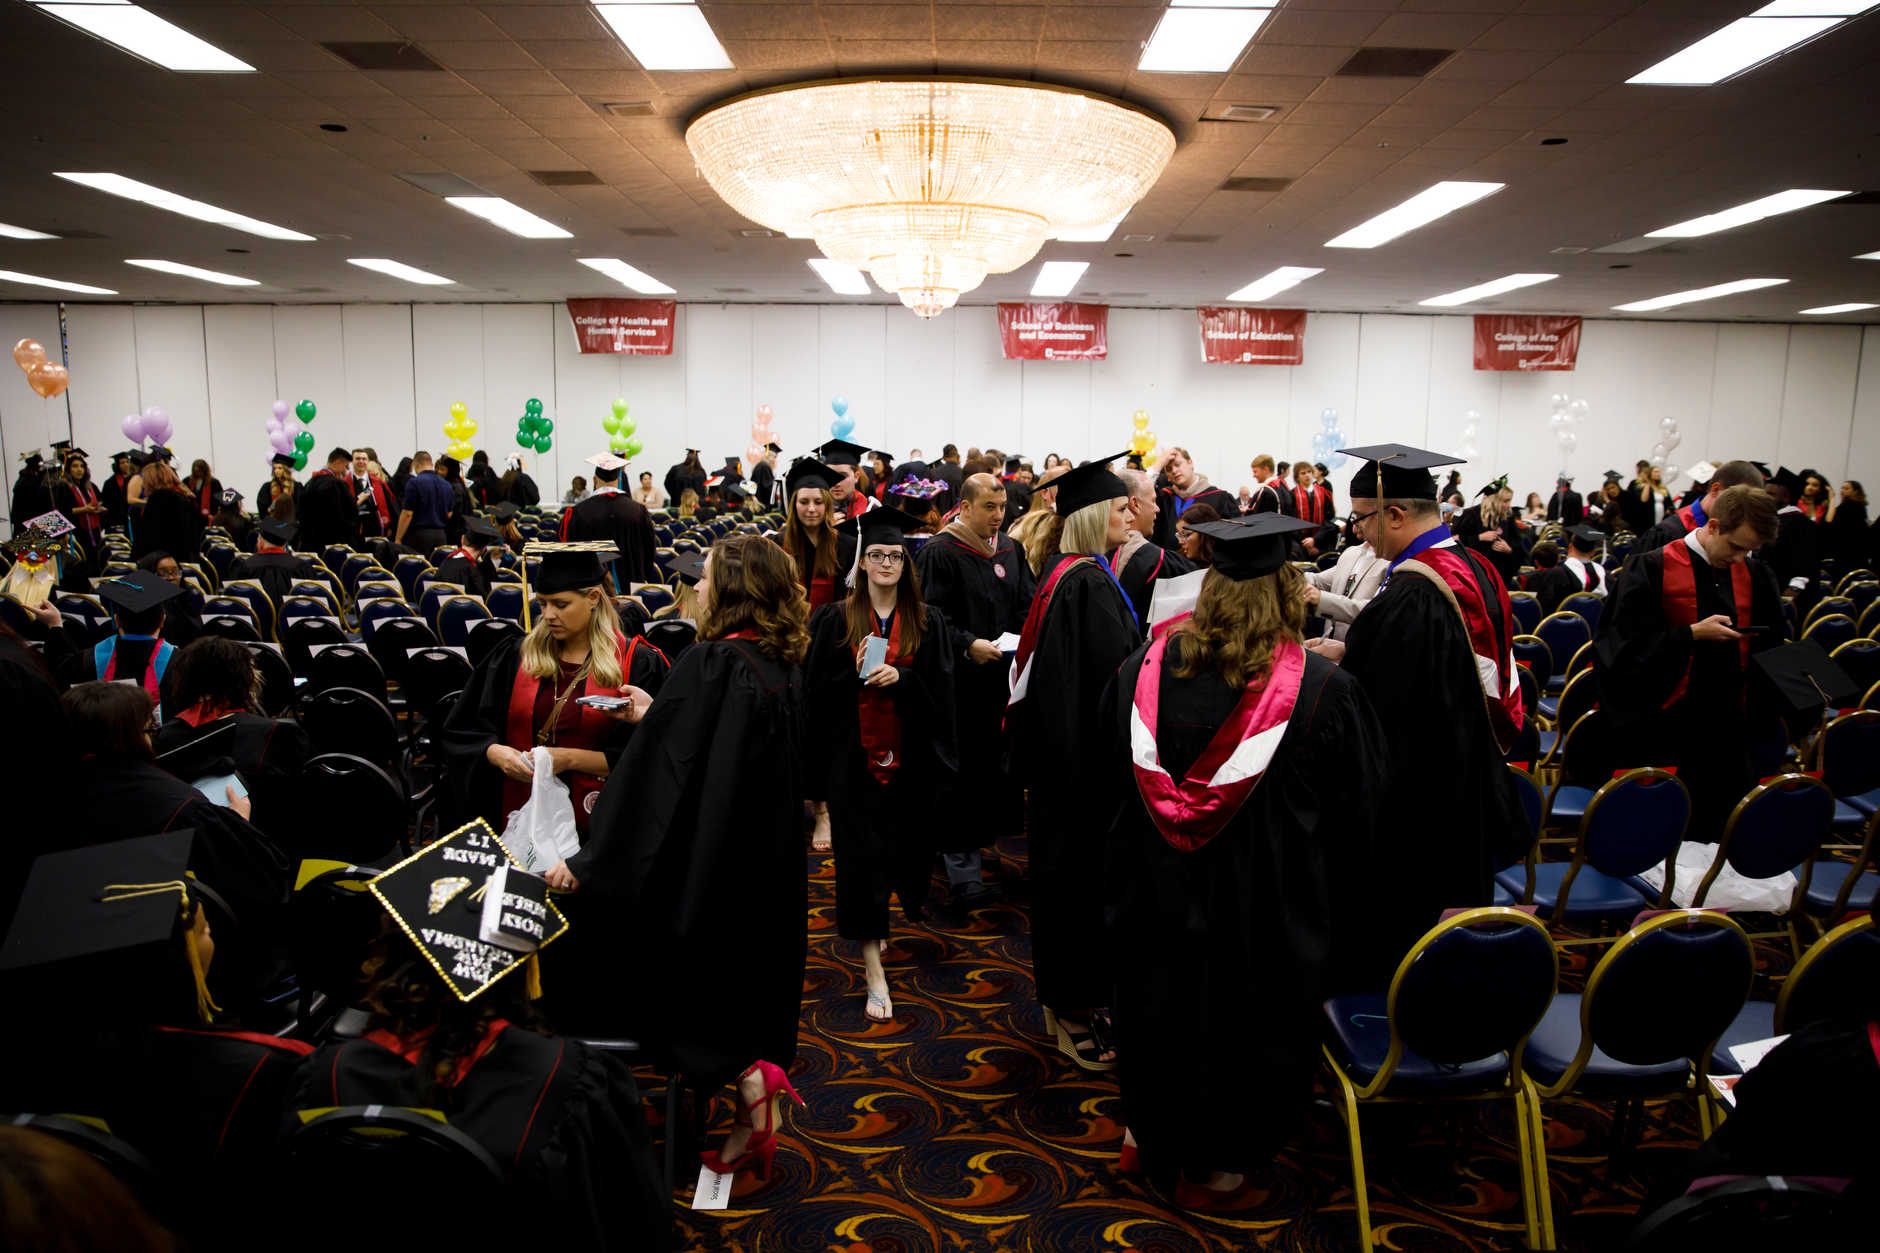 Graduates line up before the IU Northwest Commencement at the Genesis Convention Center on Thursday, May 9, 2019. (James Brosher/Indiana University)